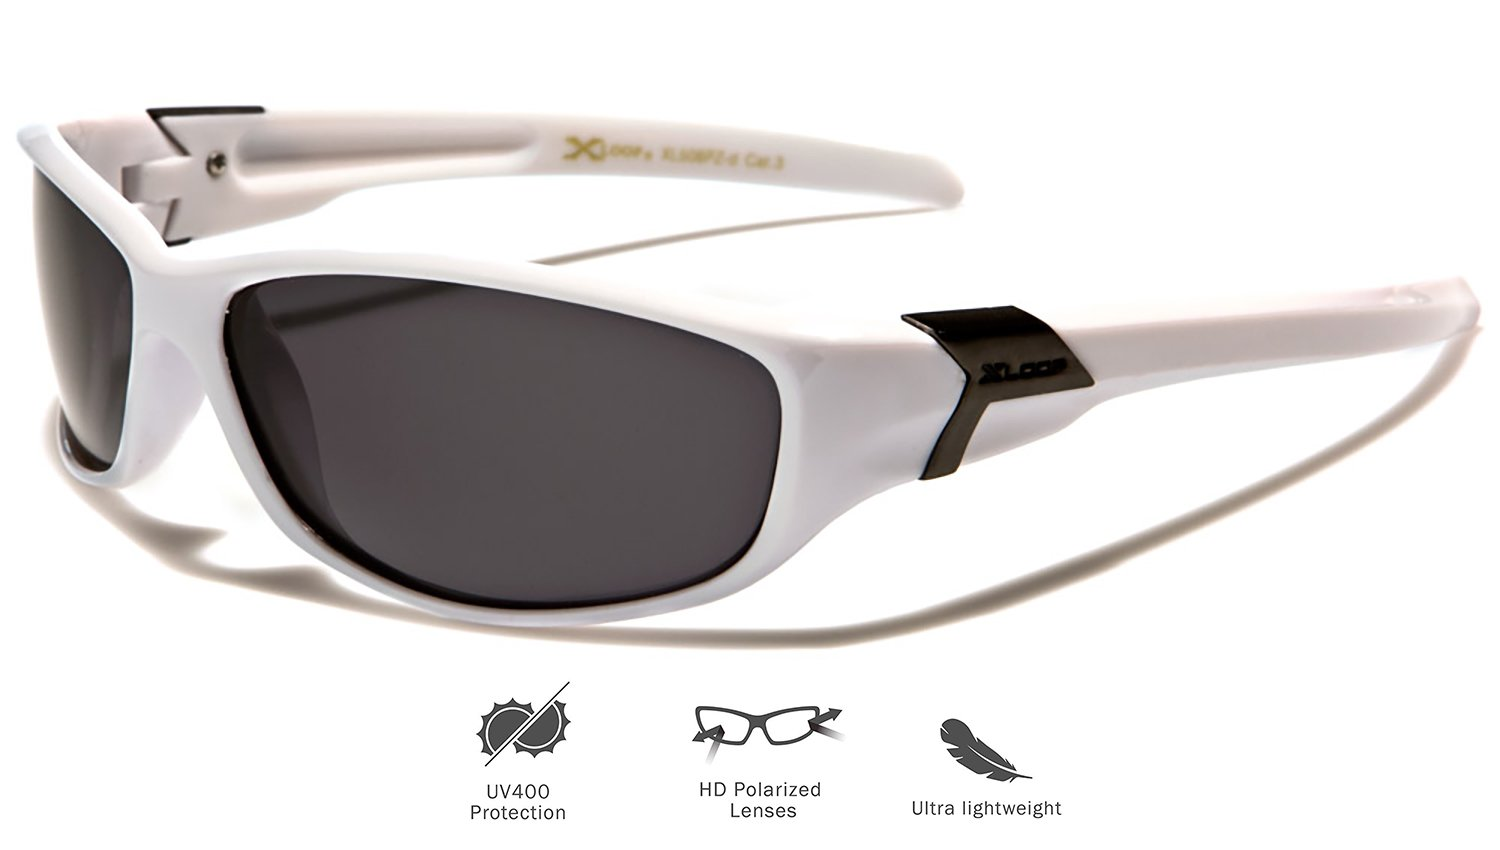 X-Loop Sportsonnenbrille, polarisiert - Model: X-Loop Courcheval - UV400 (UVA & UVB) - Ultra Lightweight